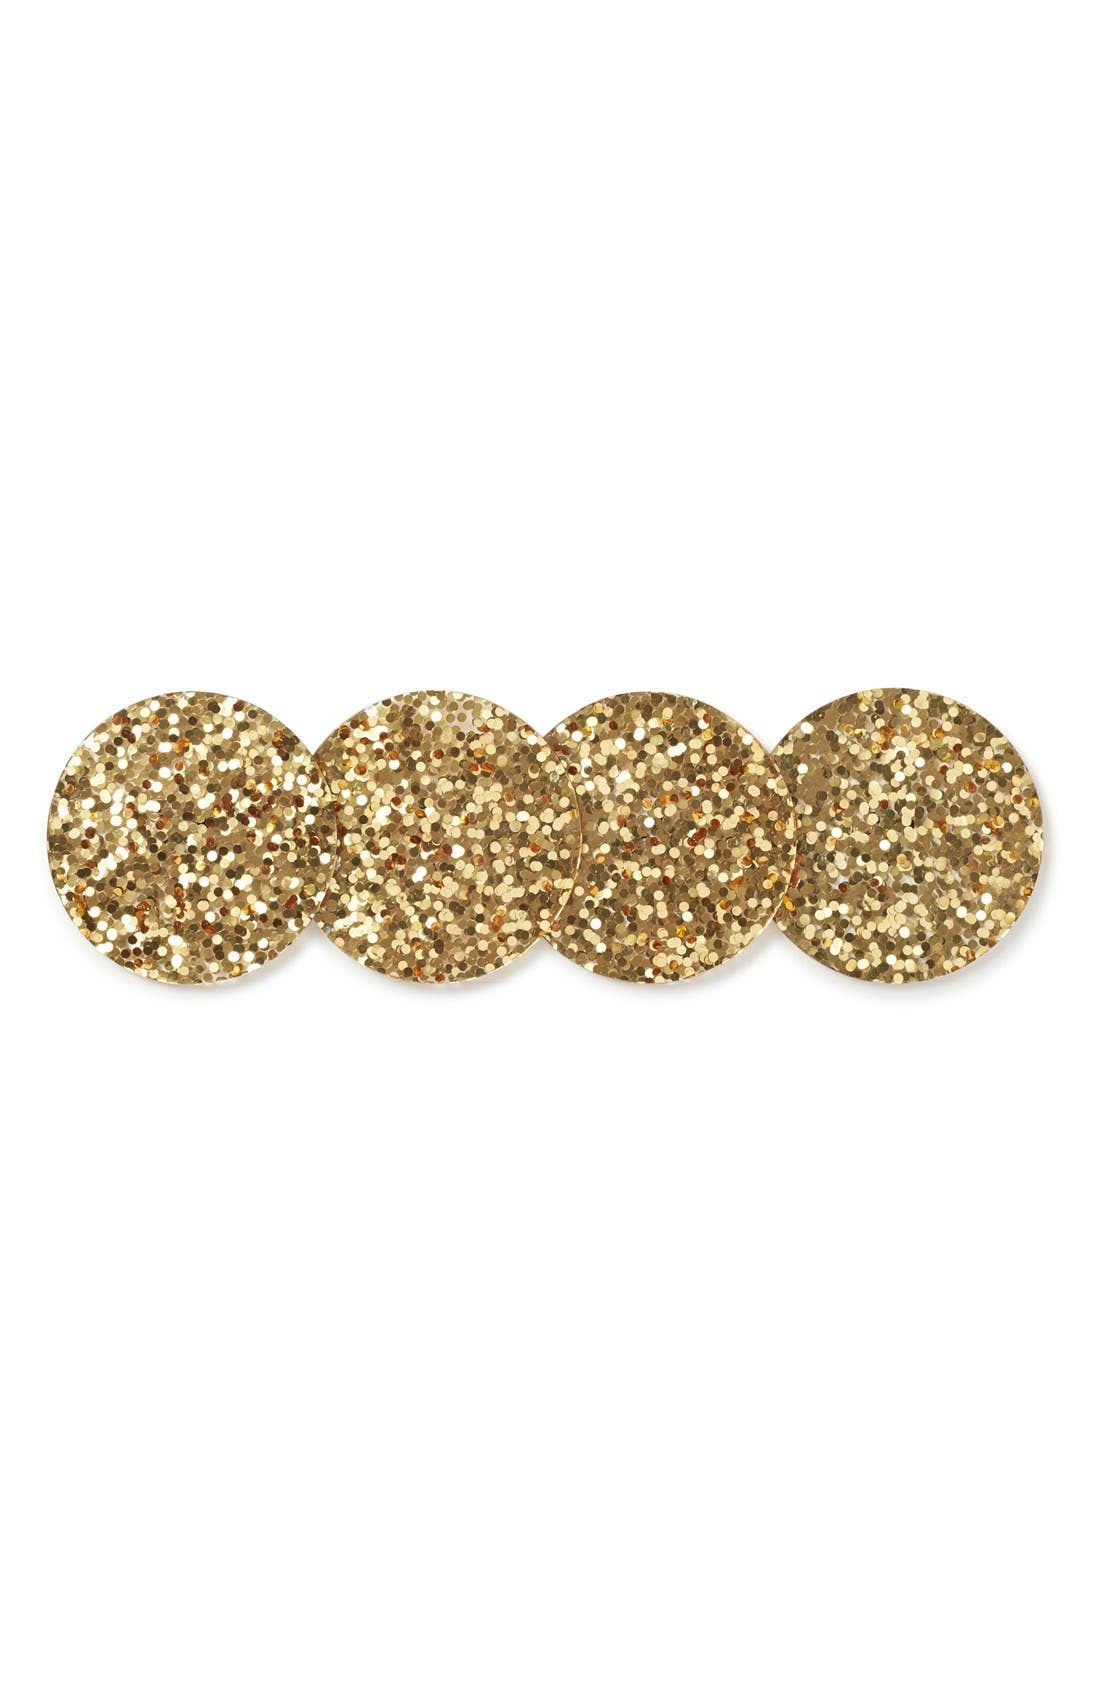 Alternate Image 1 Selected - kate spade new york 'happy hour glitter' coasters (Set of 4)